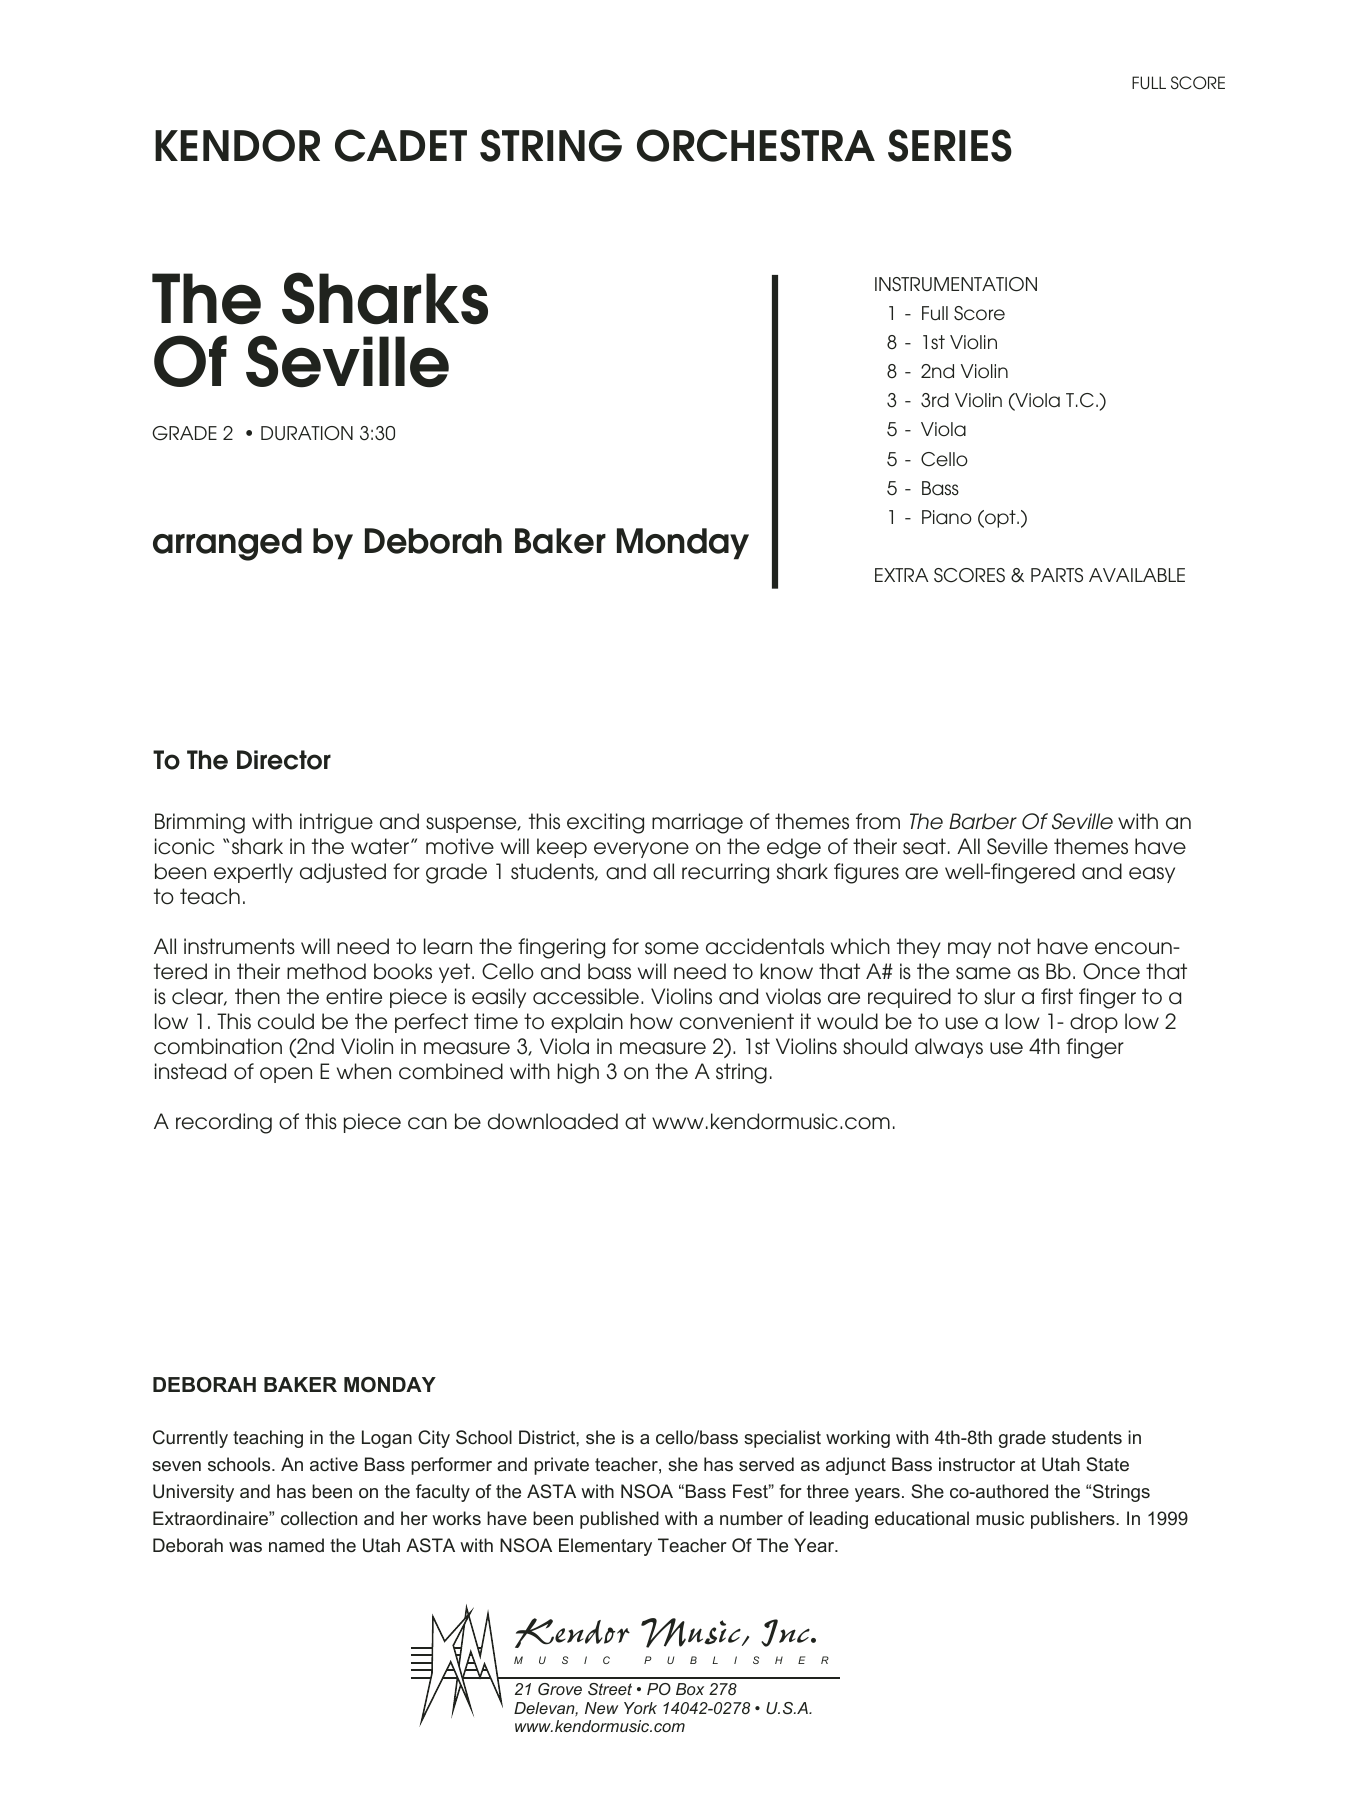 The Sharks Of Seville (COMPLETE) sheet music for orchestra by Deborah Baker Monday. Score Image Preview.